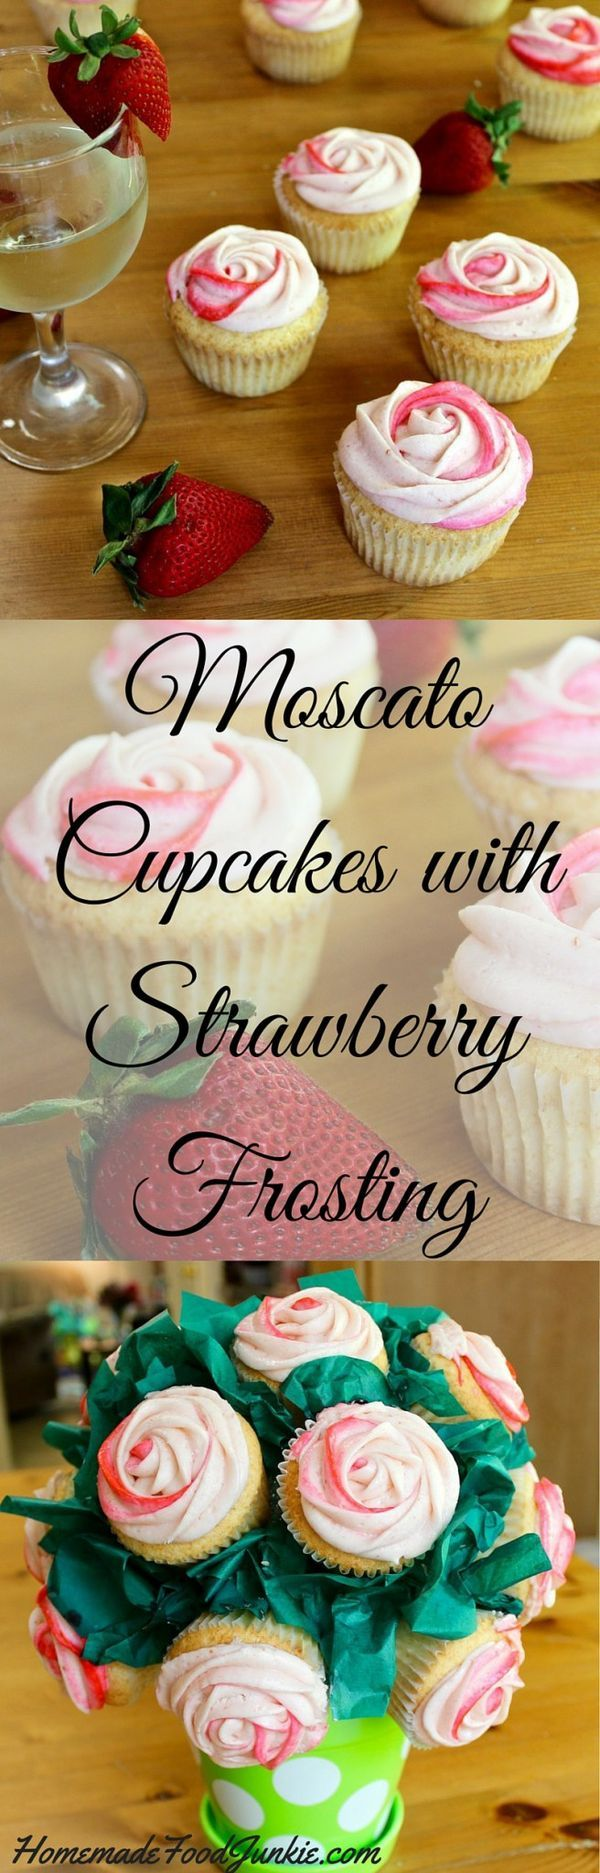 Moscato Cupcakes with Strawberry Frosting made from scratch with real strawberries. Light and fluffy and amazing flavor!! A perfect desserts recipe for a special event or party. HomemadeFoodJunkie.com